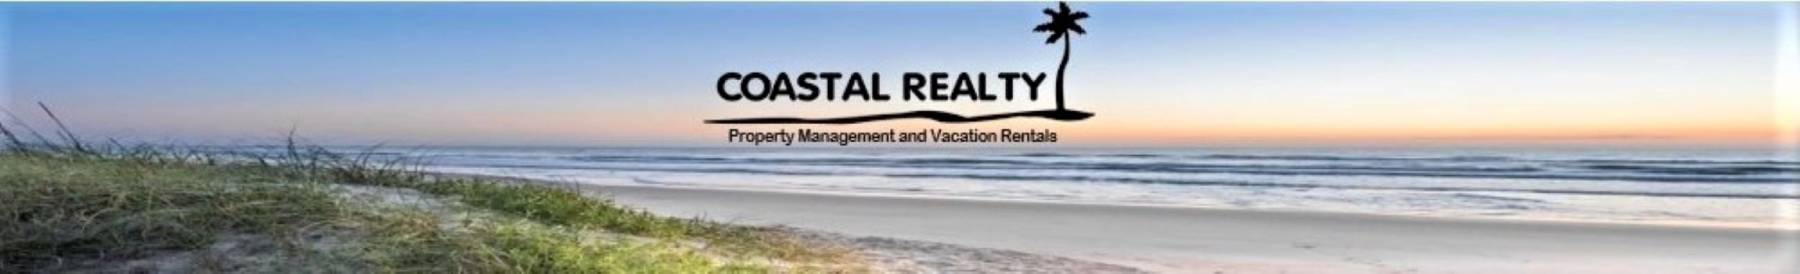 coastal realty vacation rentals icon with beach in the background